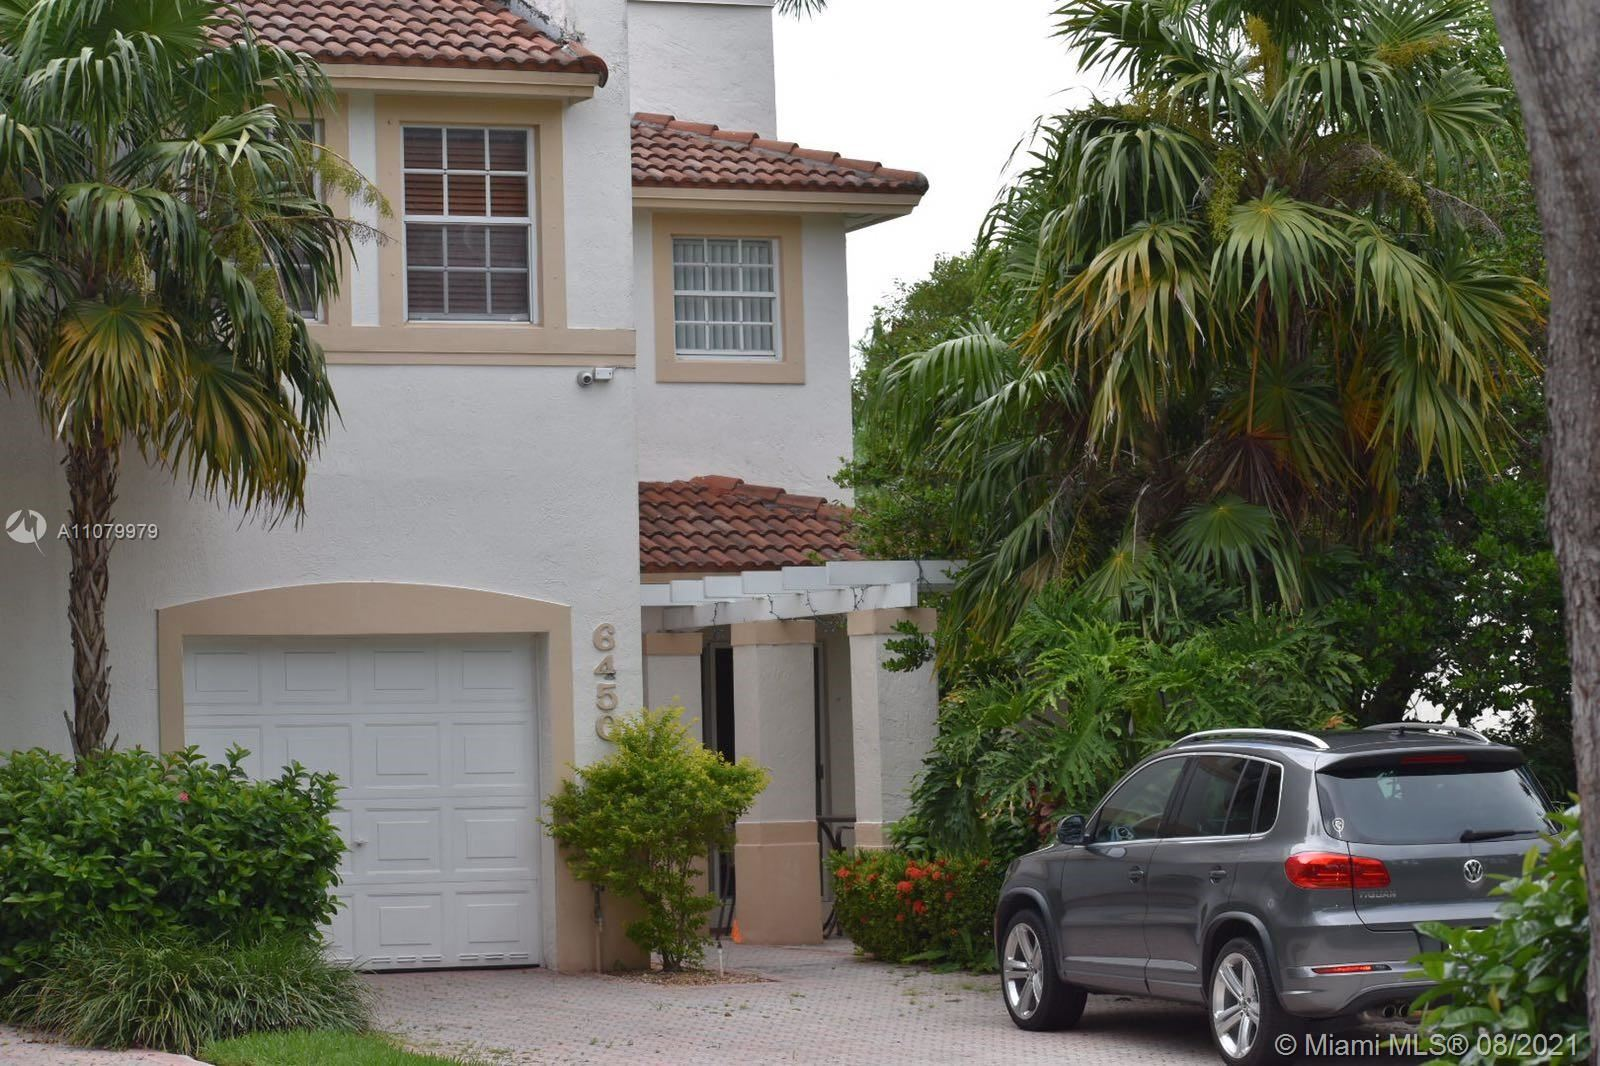 6450 NW 109th Ave, Doral, FL 33178 - #: A11079979